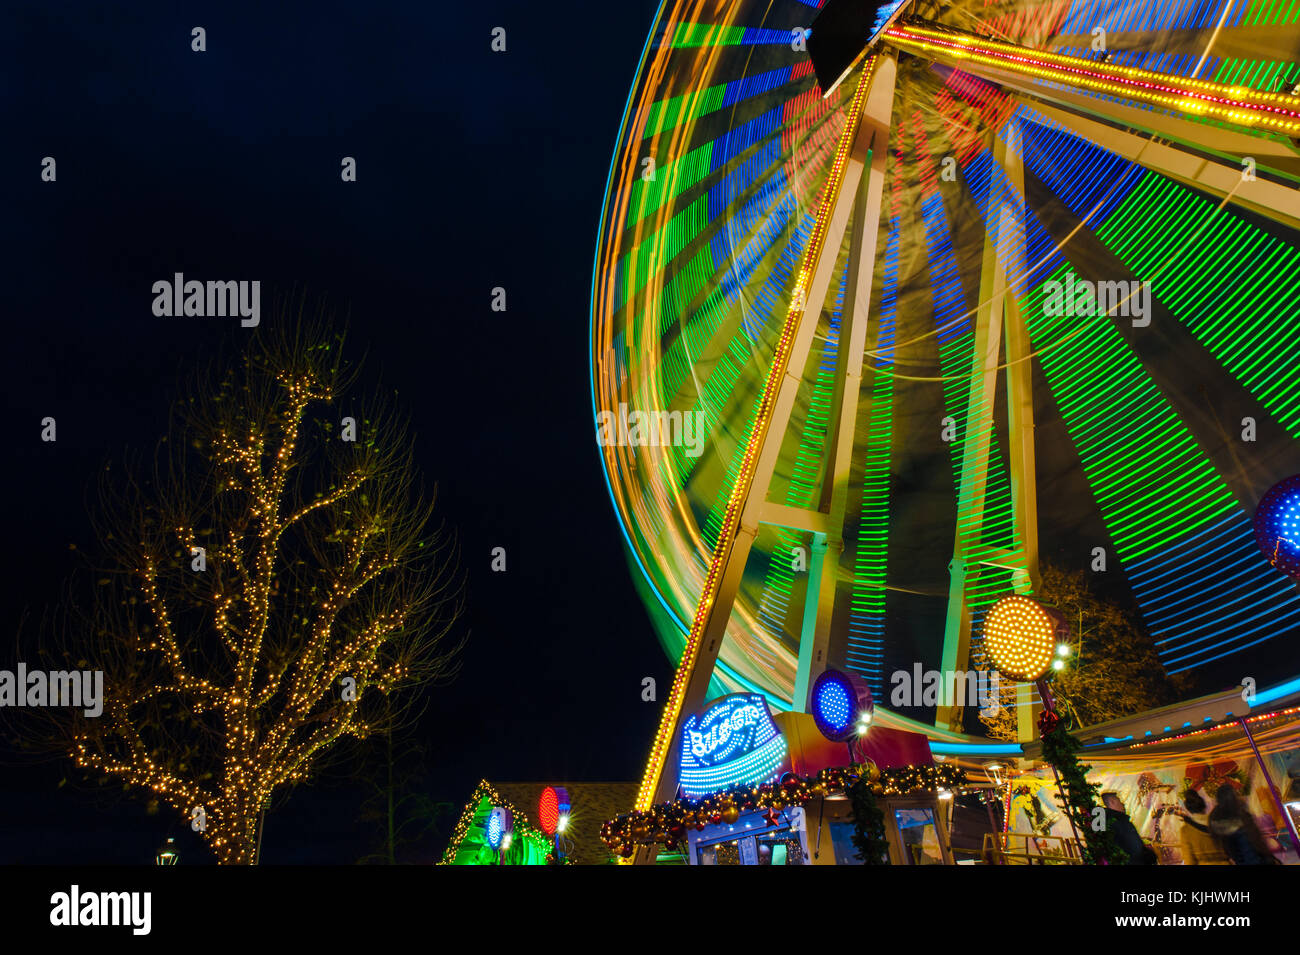 ferris-wheel-in-motion-at-night-in-luxem